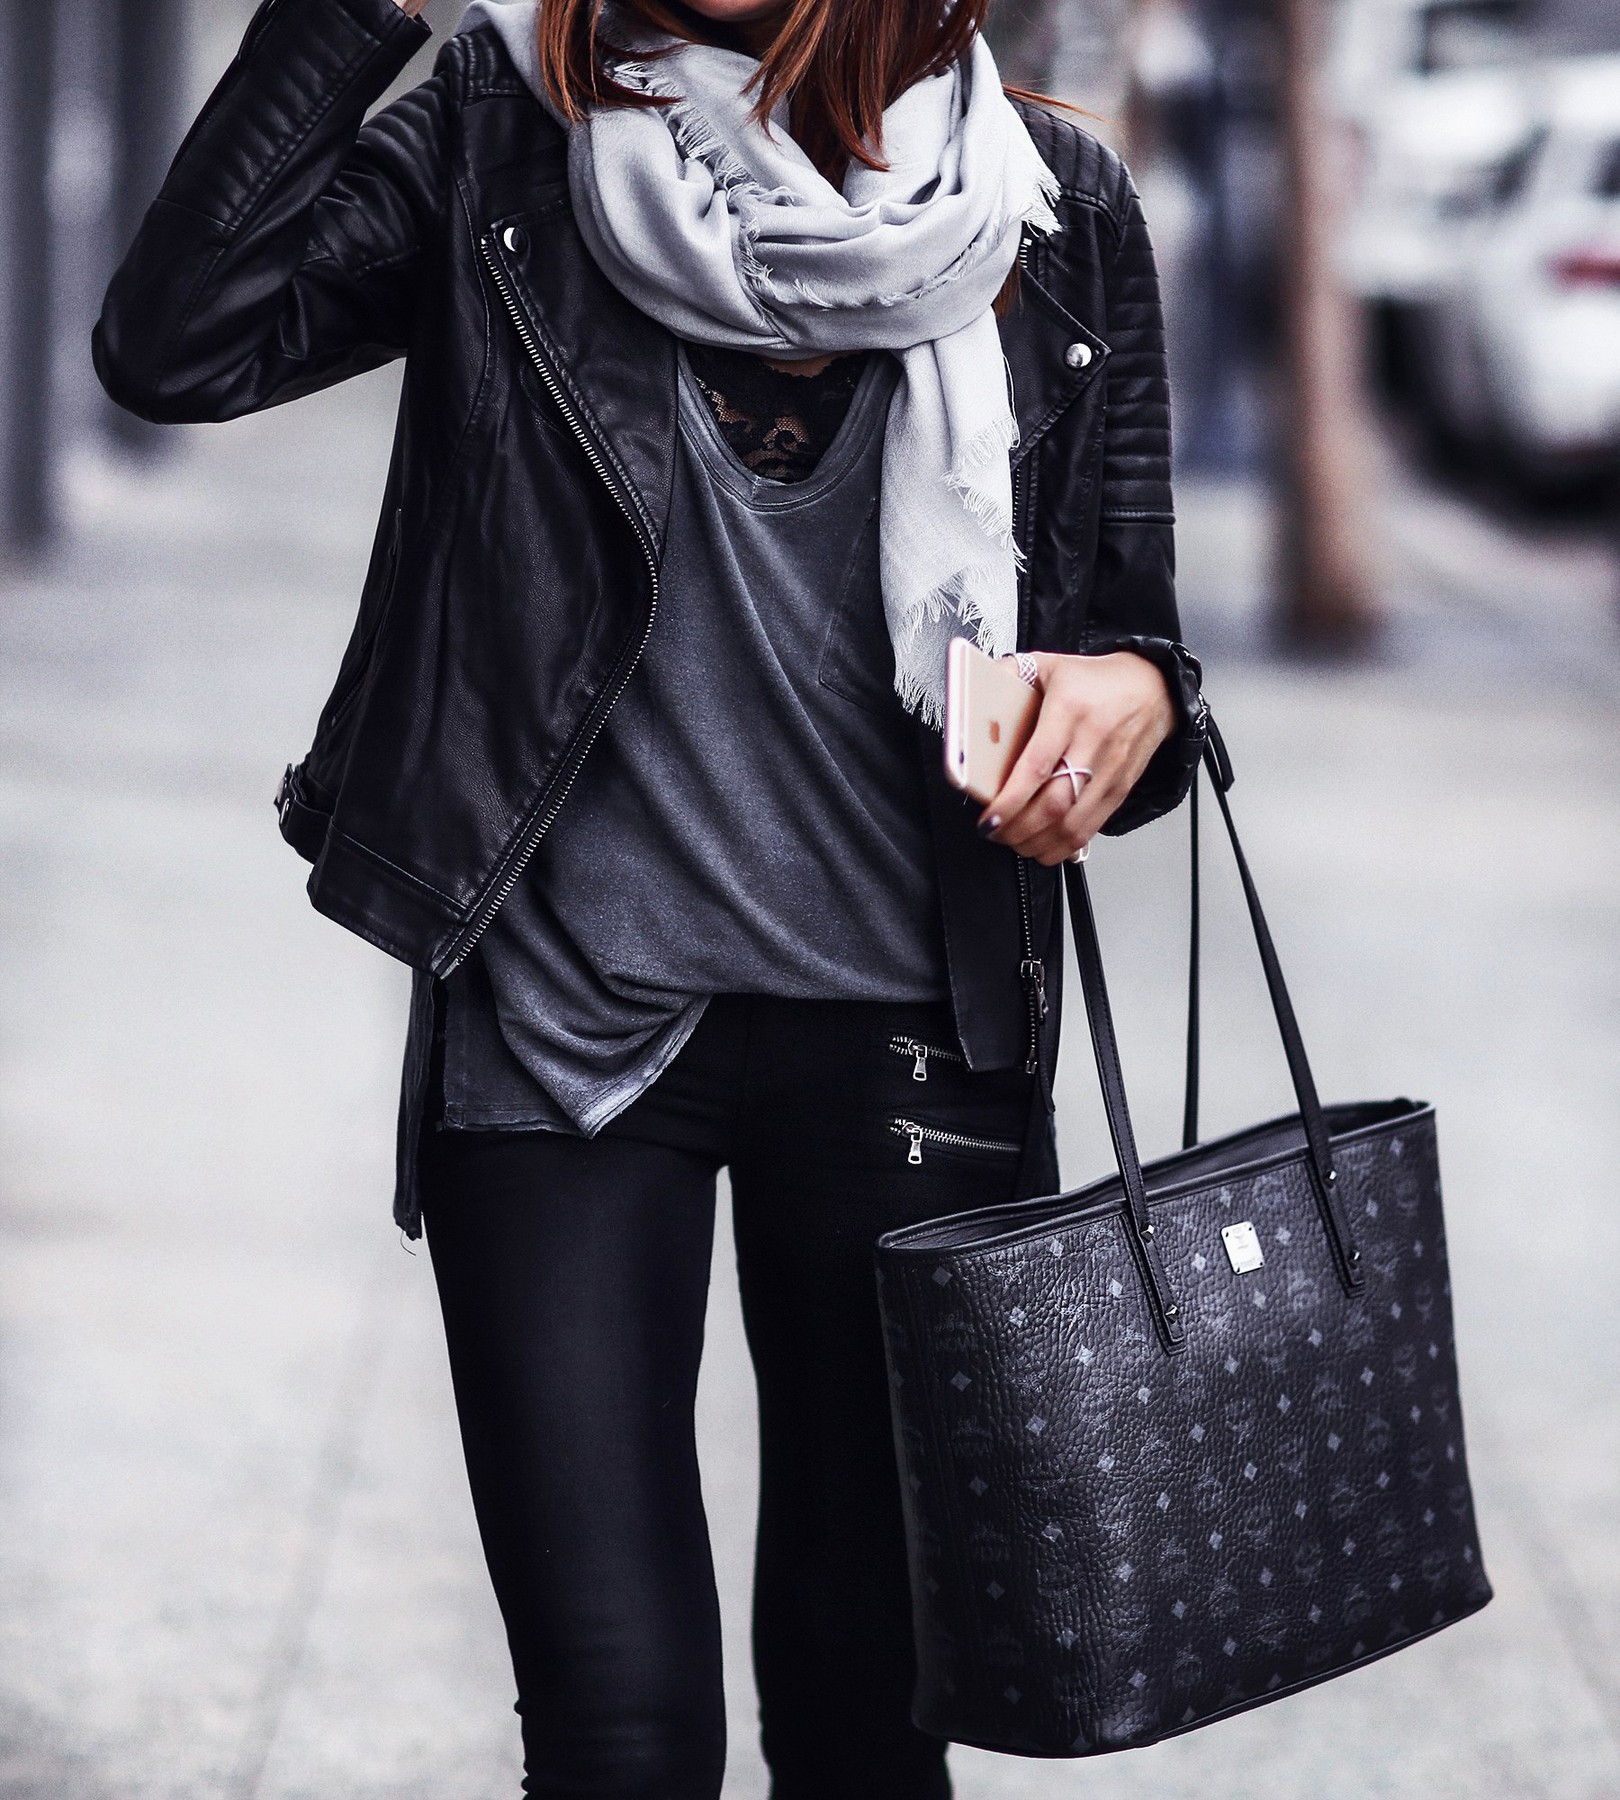 scarf, black leather jacket, black booties, chic tote bag